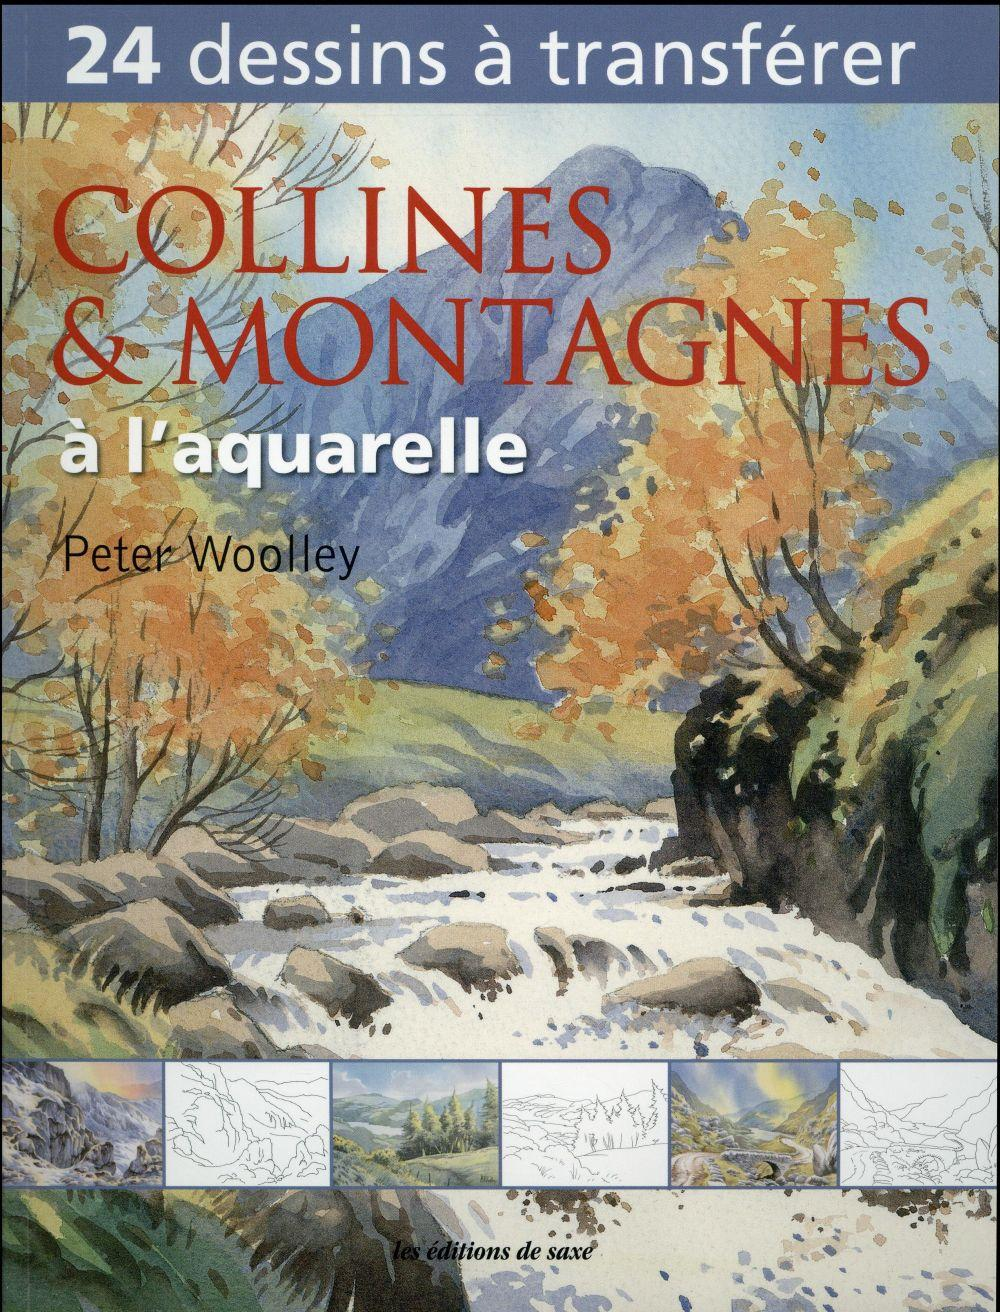 Collines et montagnes à l'aquarelle  - Peter Woolley